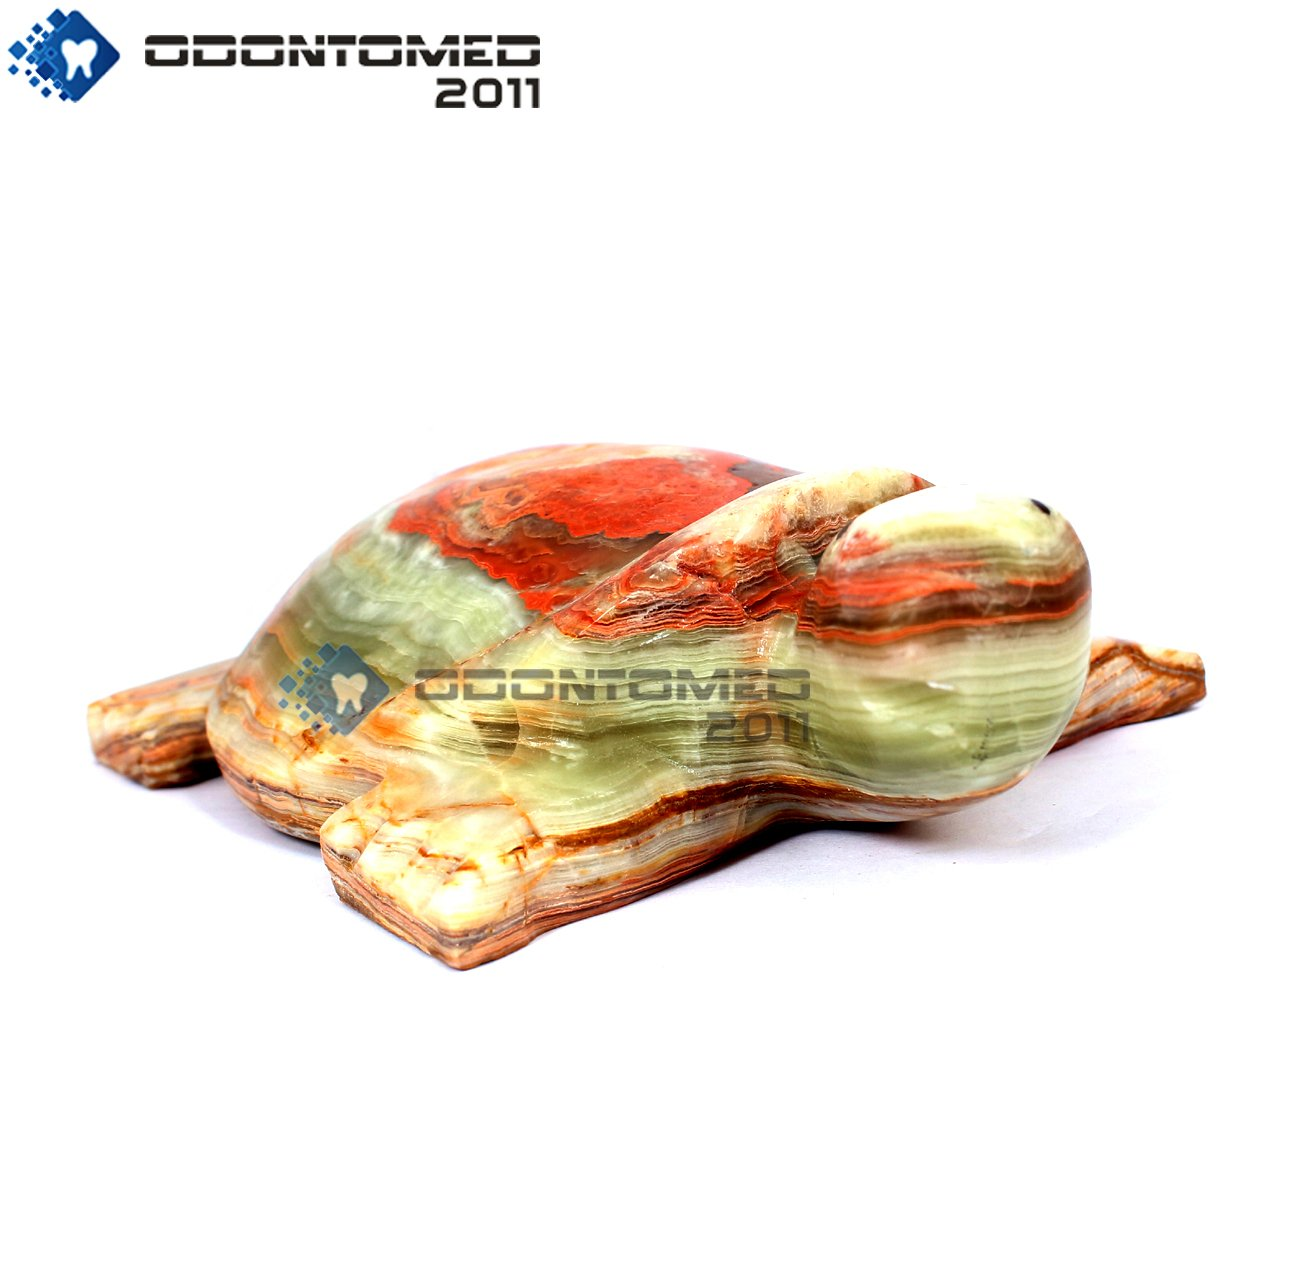 OdontoMed2011 Turtle Multi Color 6'' Onyx Marble Hand Curved Animal Decorative Beautiful